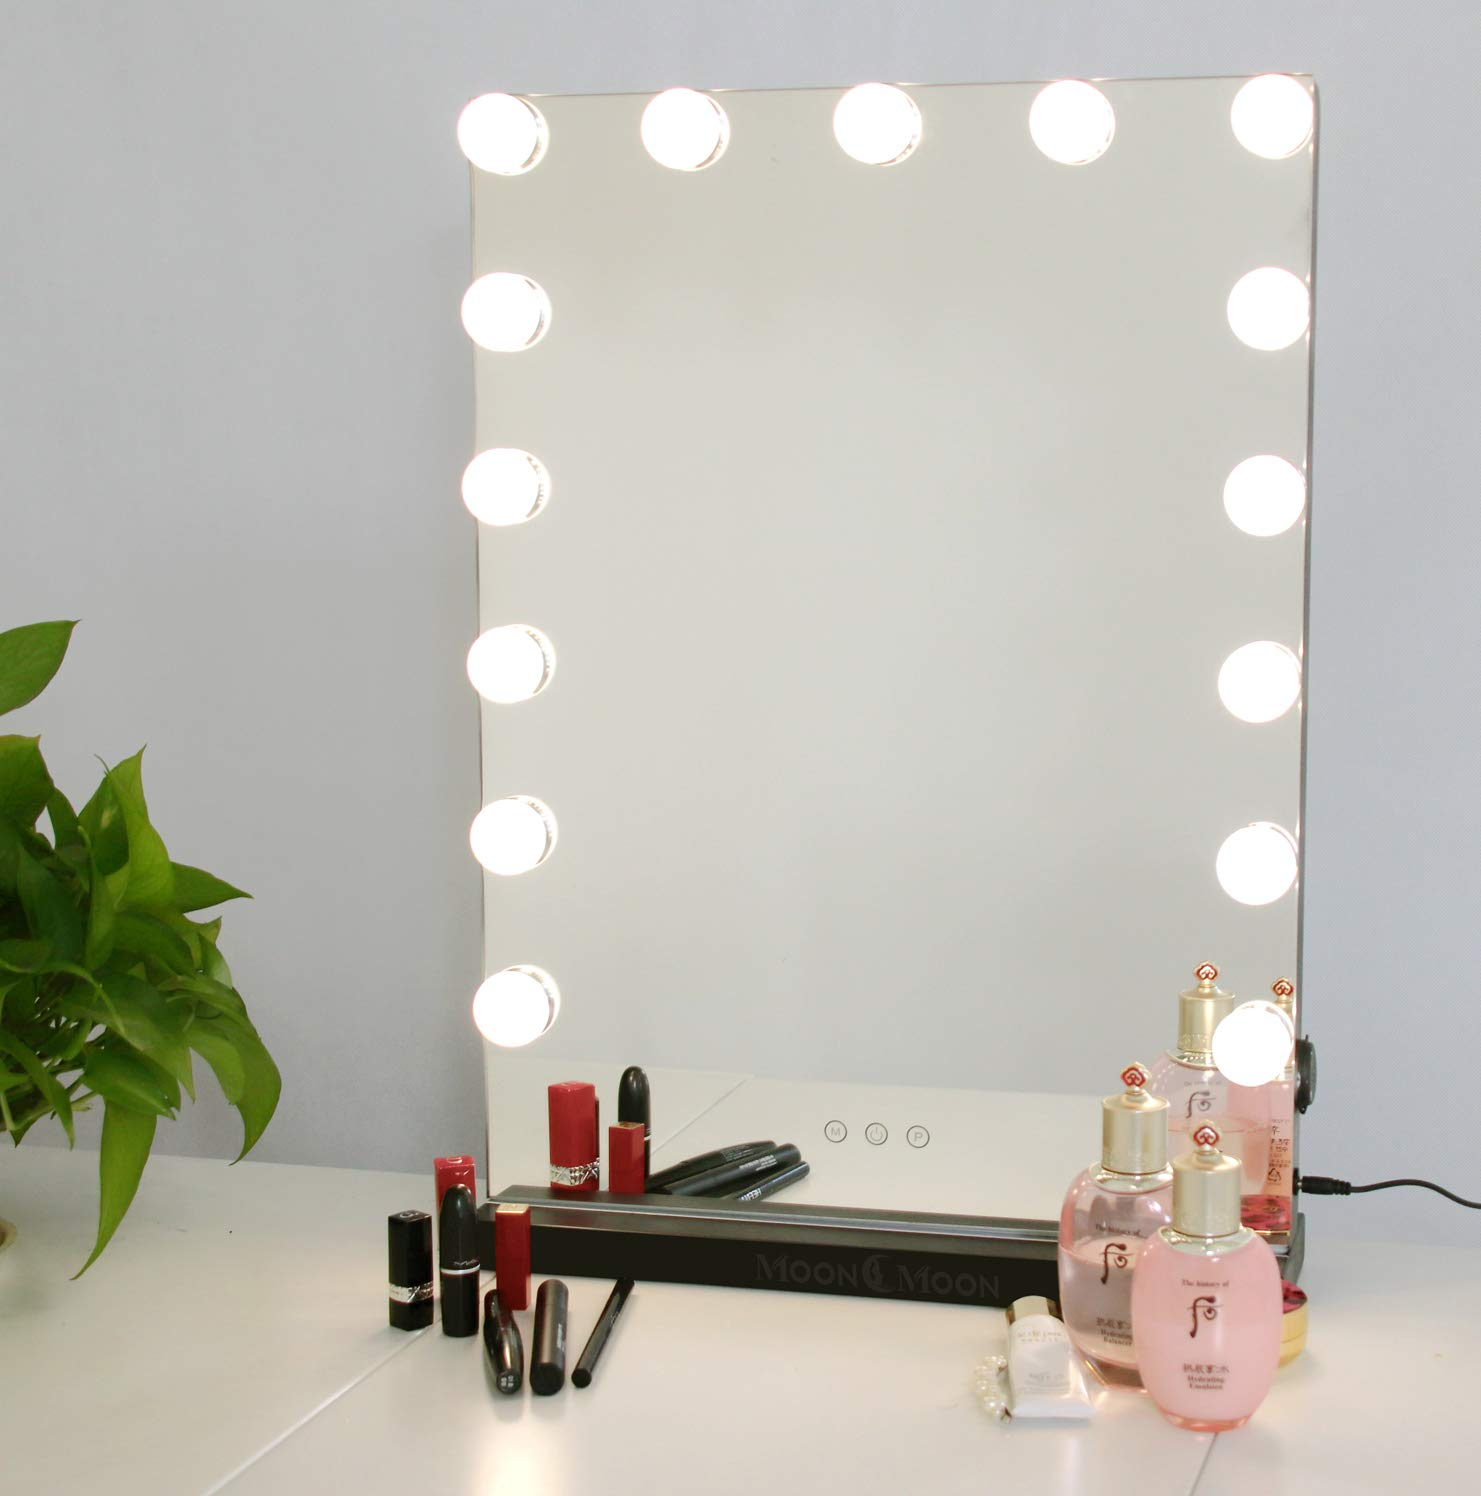 Moon Moon Hollywood Vanity Mirror with Lights,Professional Makeup Mirror & Lighted Vanity Makeup mirror with Smart Touch Adjustable LED Lights (White)